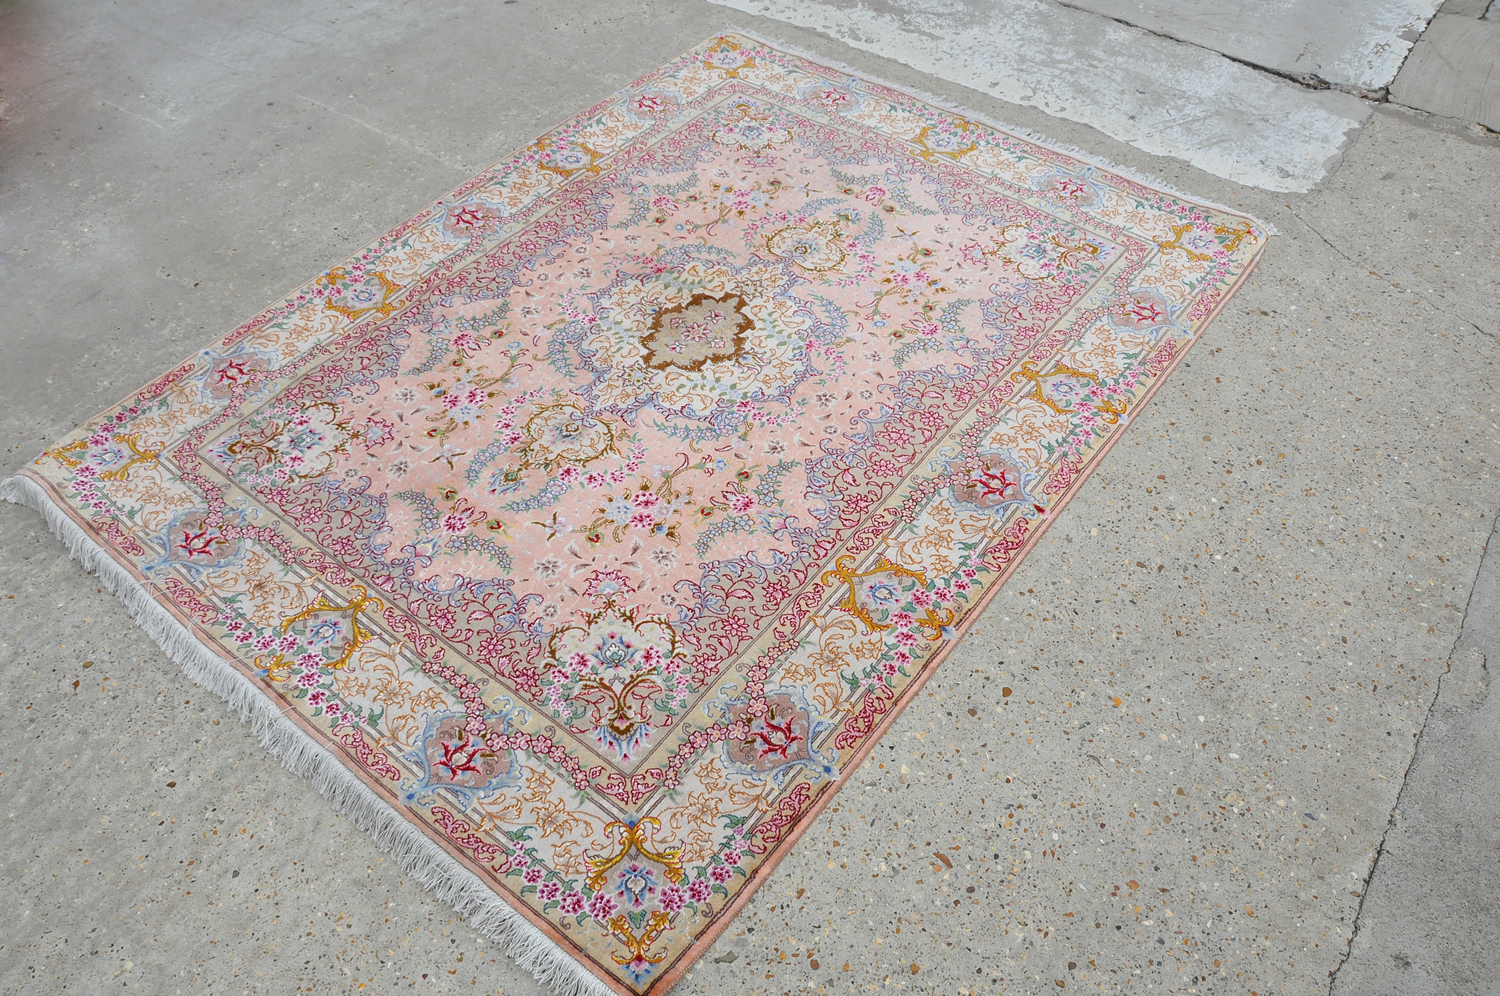 Cleaning-process-karimi-rug-09.jpg